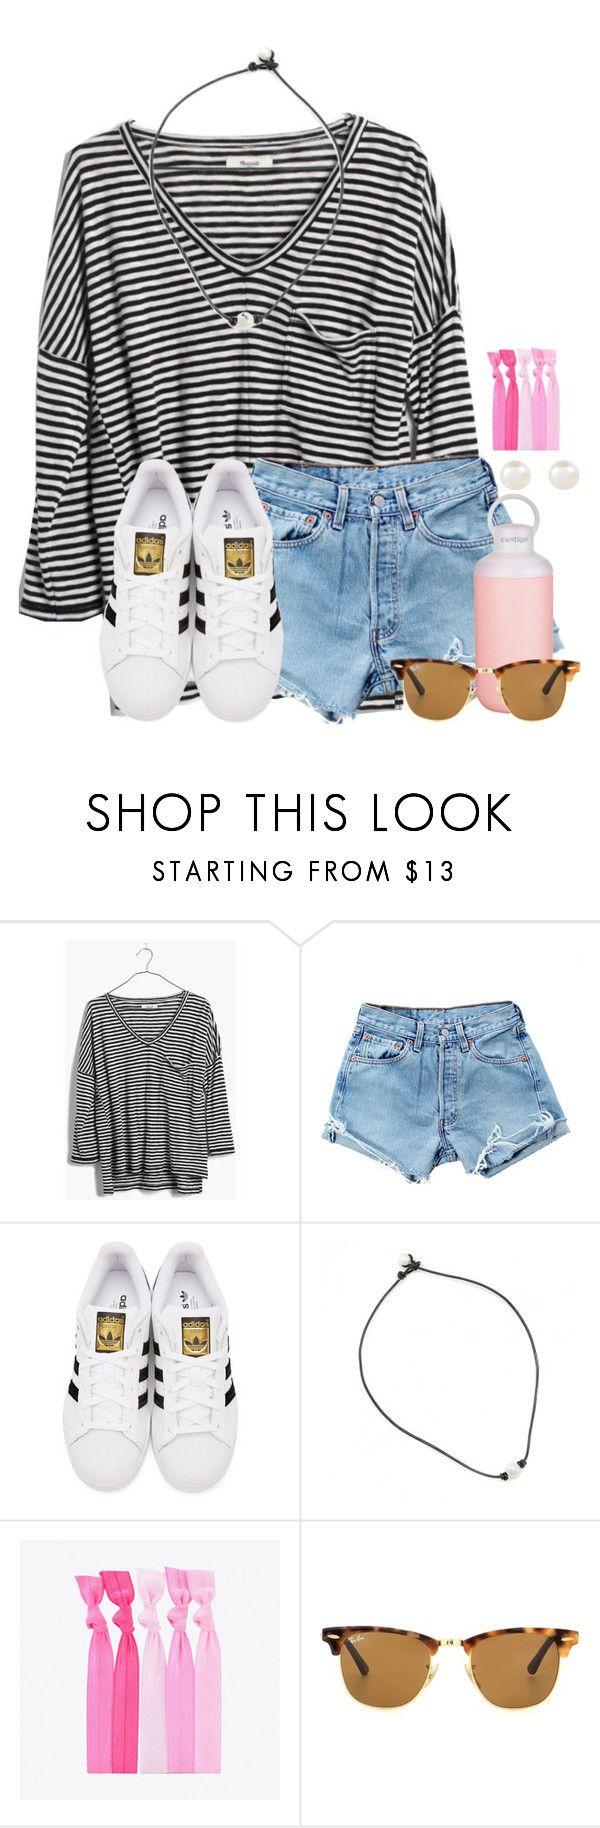 """""""Pop of Pink """" by aweaver-2 on Polyvore featuring Madewell, Levi's, adidas Originals, Contigo, Popband, Ray-Ban and Accessorize"""